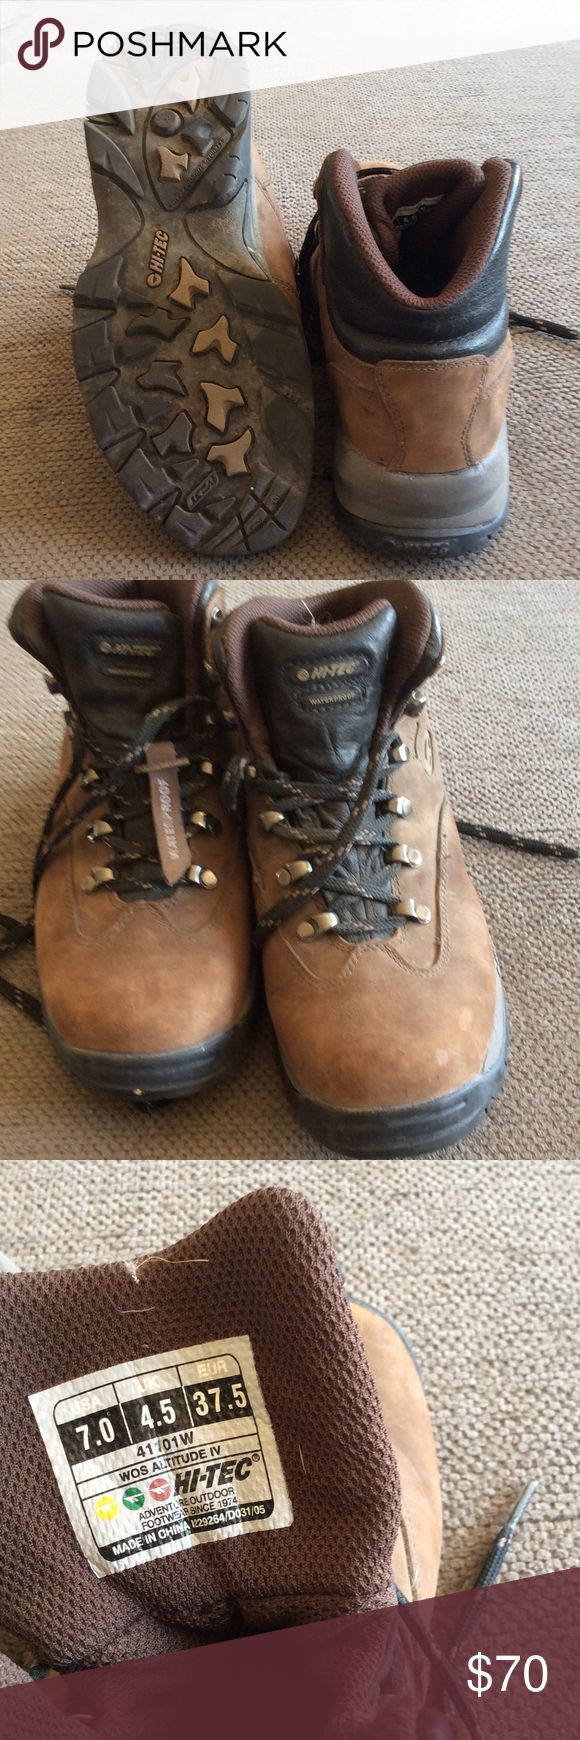 Hiking boots Very comfy and used a few times they are waterproof Hi-Tec Shoes